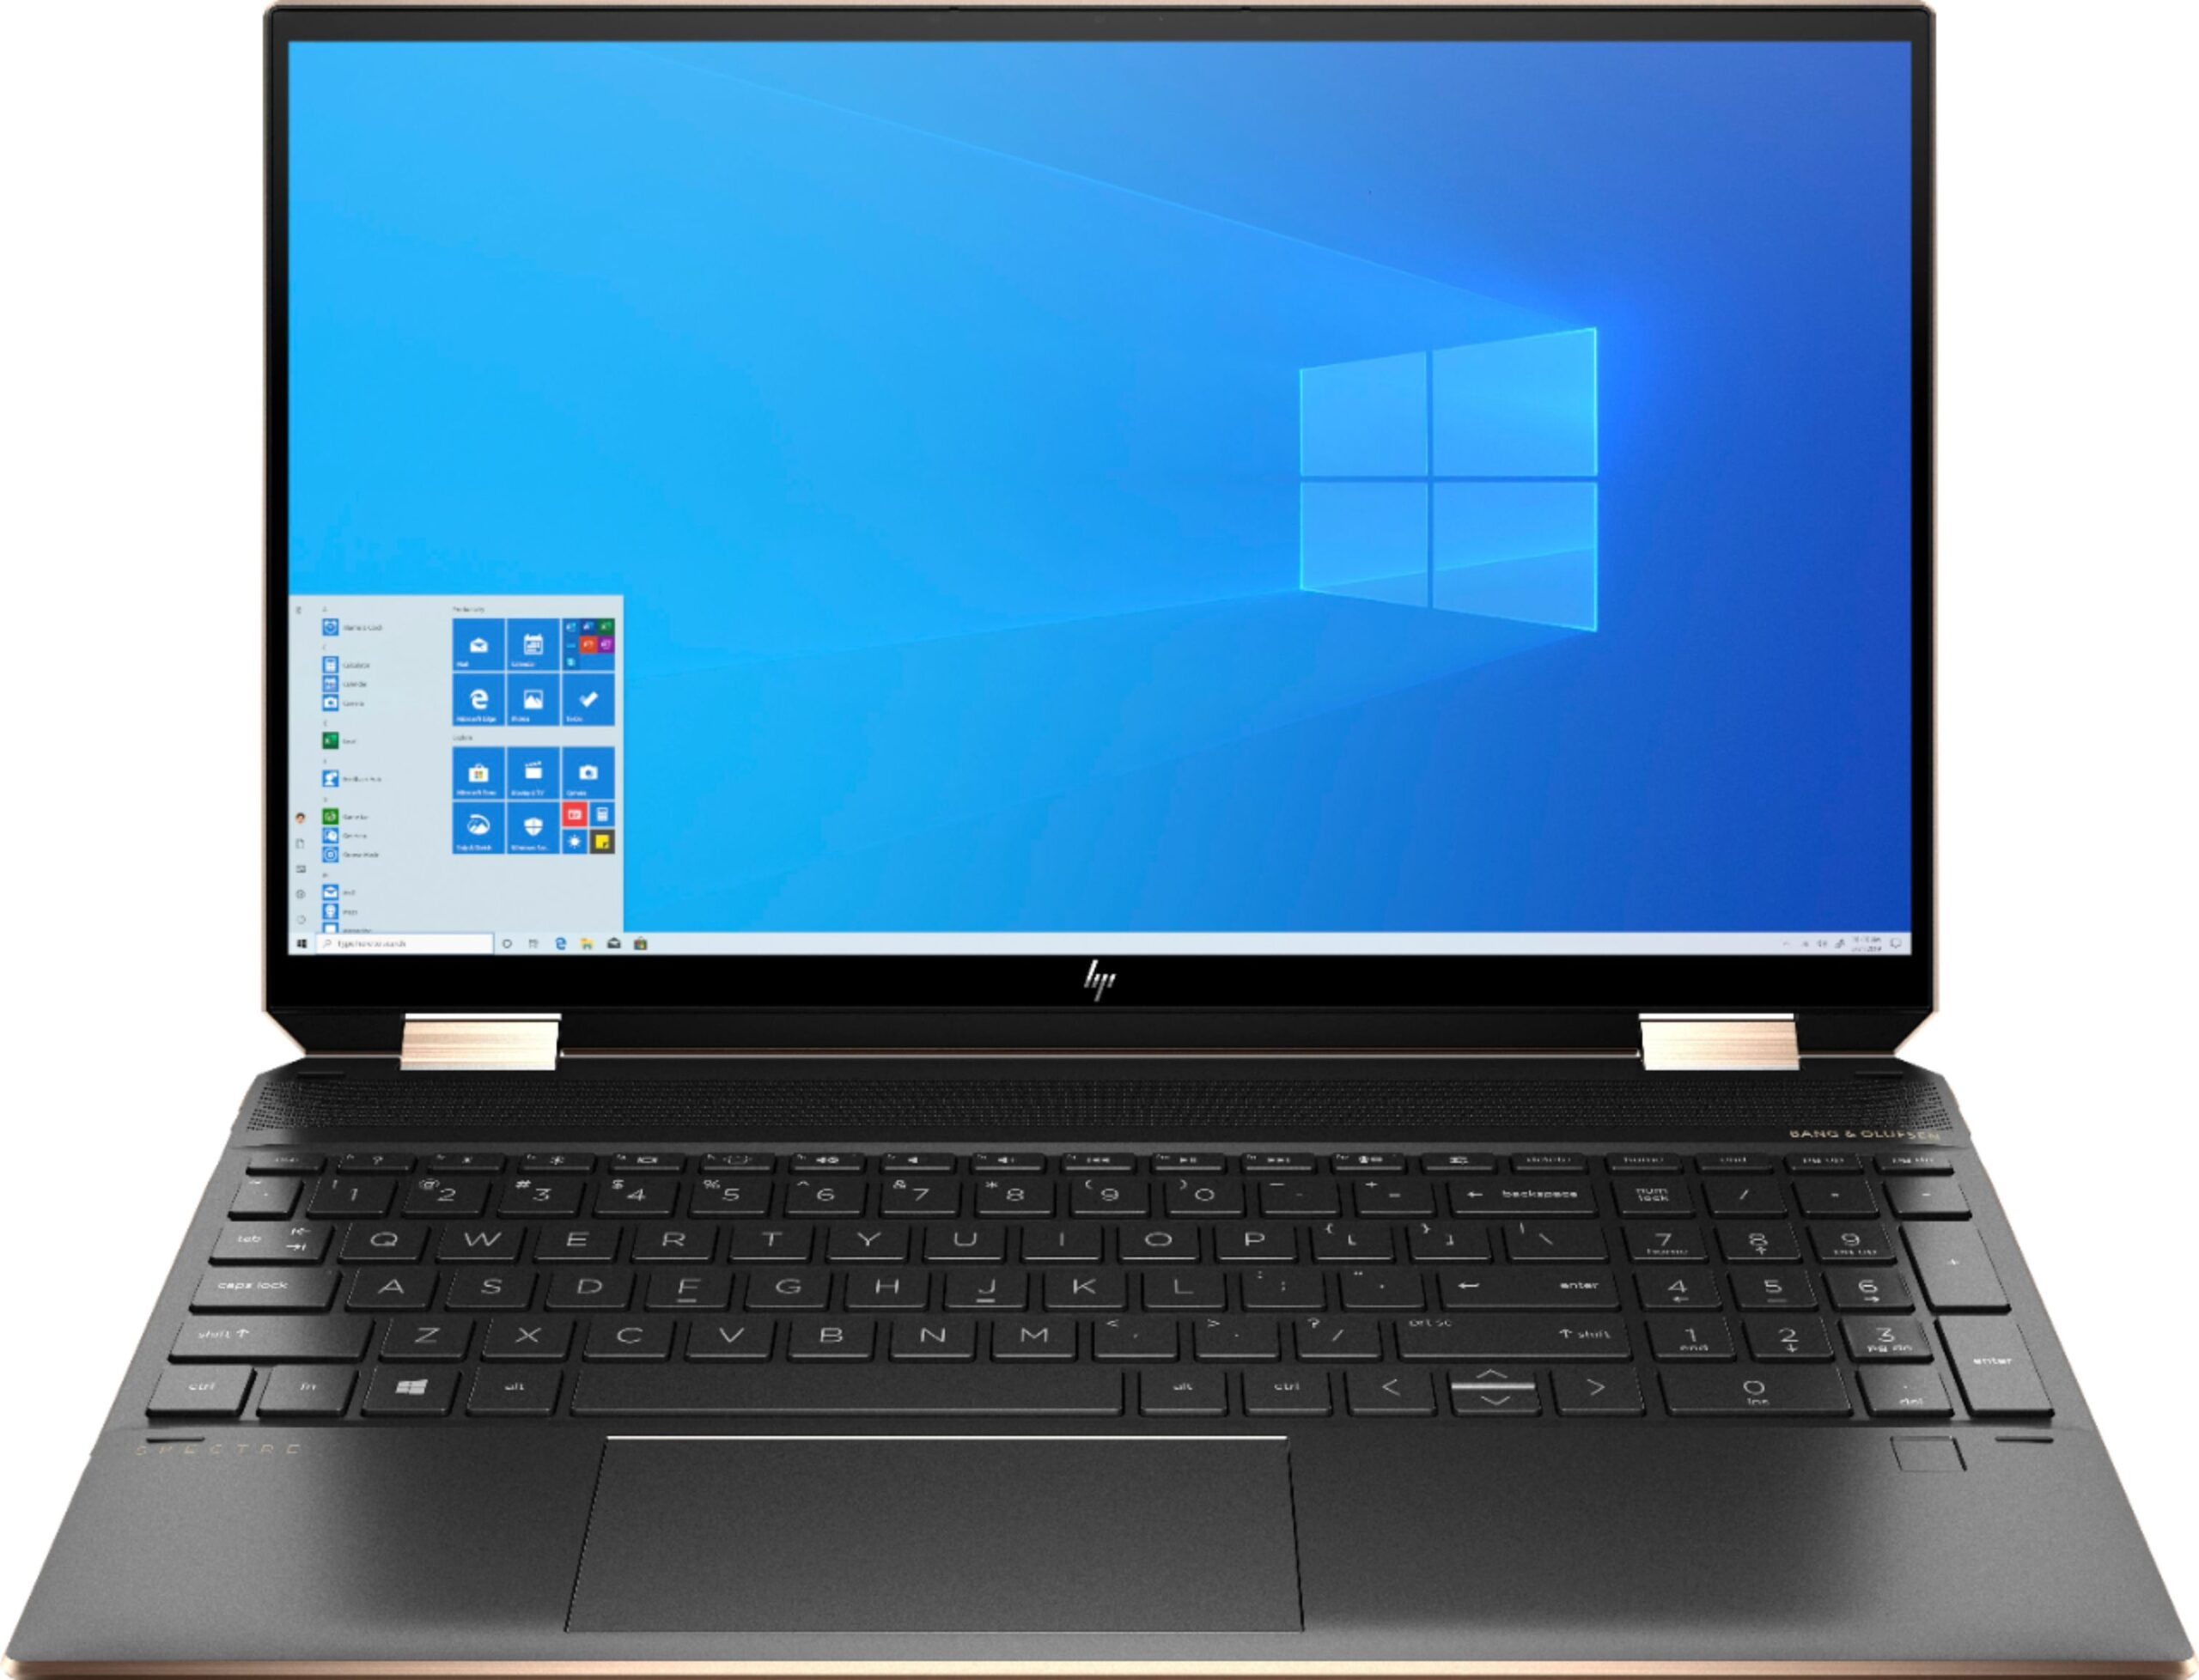 Best Laptop for College Classes